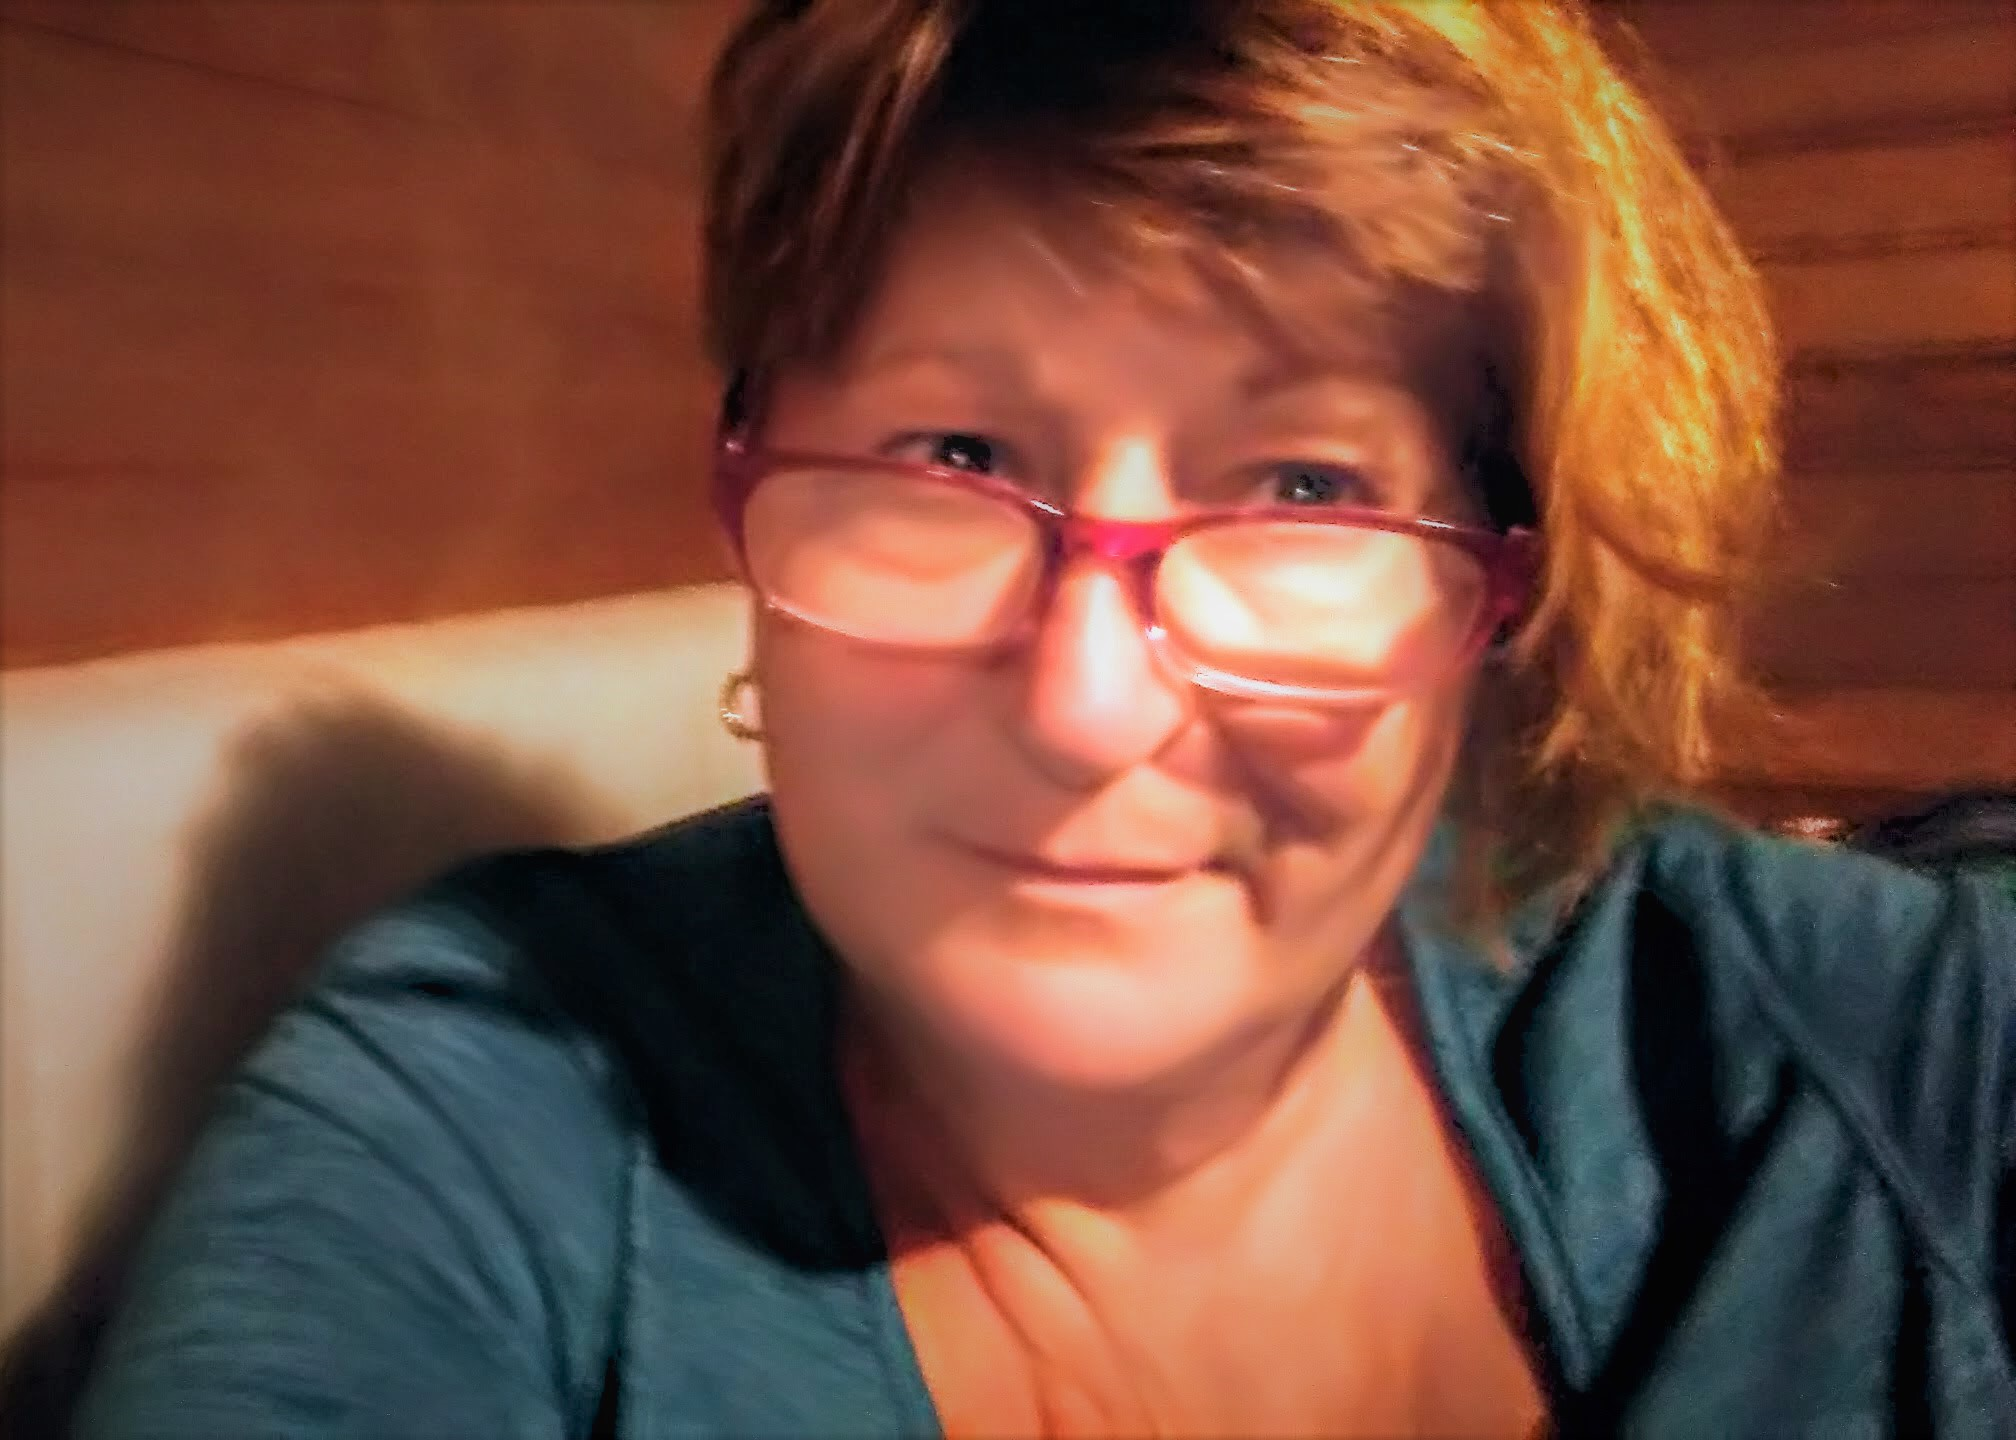 CAROLYN LAIR - Tour Booker / Agent Carolyn is the principal of Sustainable Strategies Arts Management. She has a 25 year history as an arts producer, manager of arts organizations & cultural festivals.Lair has also been the Artistic Producer of civic theatres, galleries and performances venues. Lair has provided cultural planning and management training services to clients of federal, provincial and city government agencies, arts foundations and cultural non-profits in Canada, the US and UK.Since 2012, Sustainable Strategies primary focus is organizational capacity and building multi- year international cultural exchanges between Canada and arts organizations around the world.